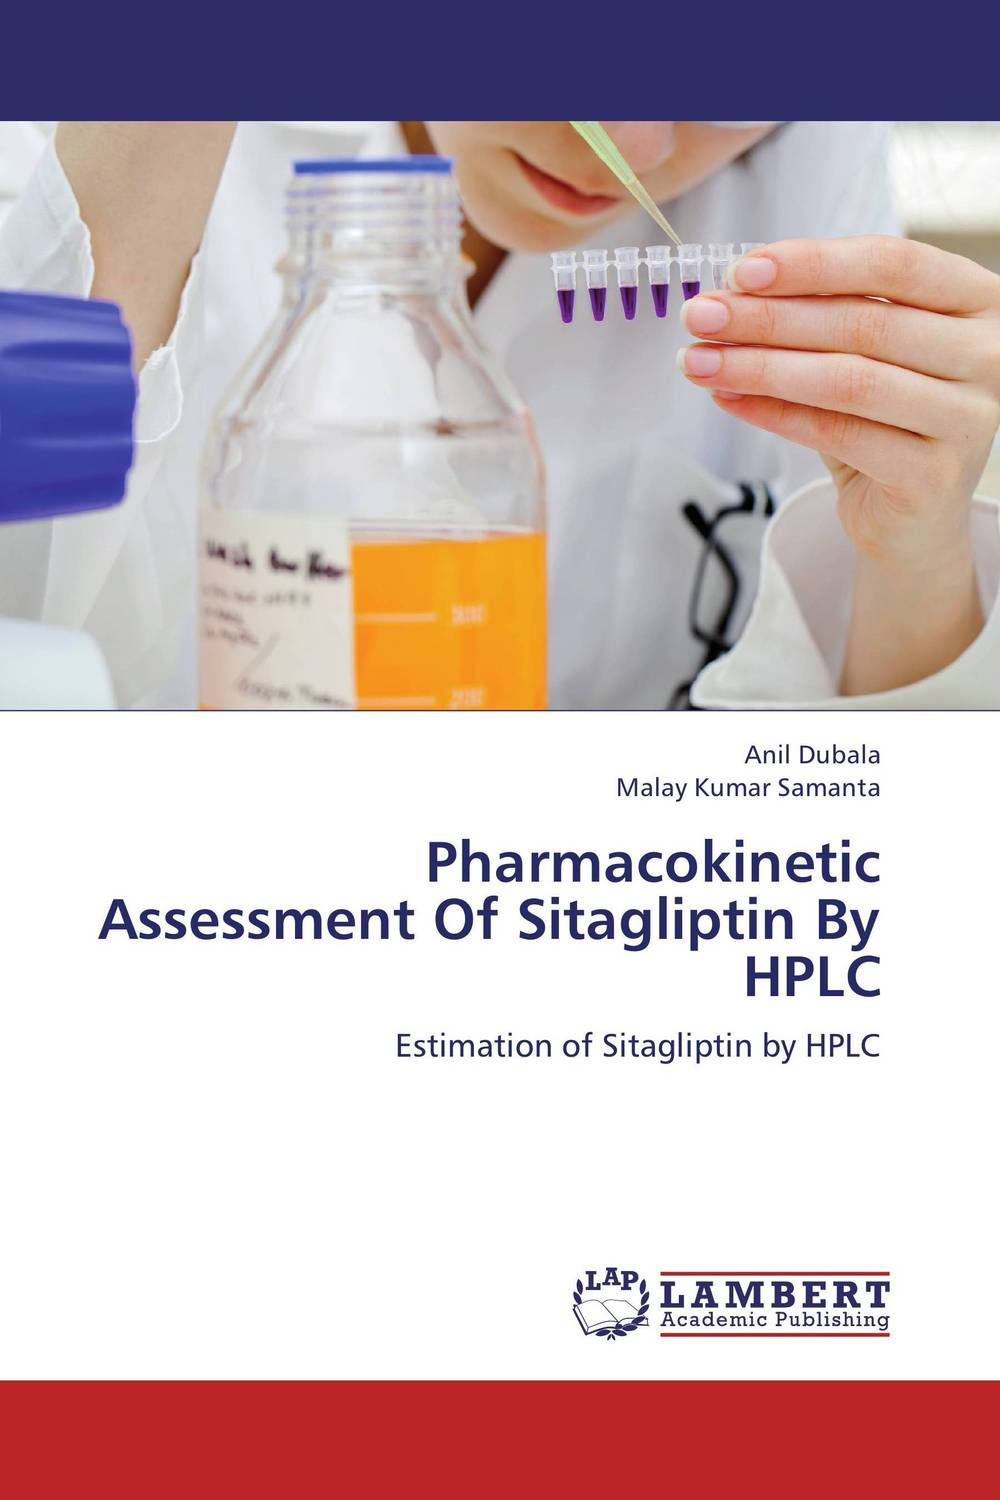 Pharmacokinetic Assessment Of Sitagliptin By HPLC evaluation of pile failure mechanism by piv method